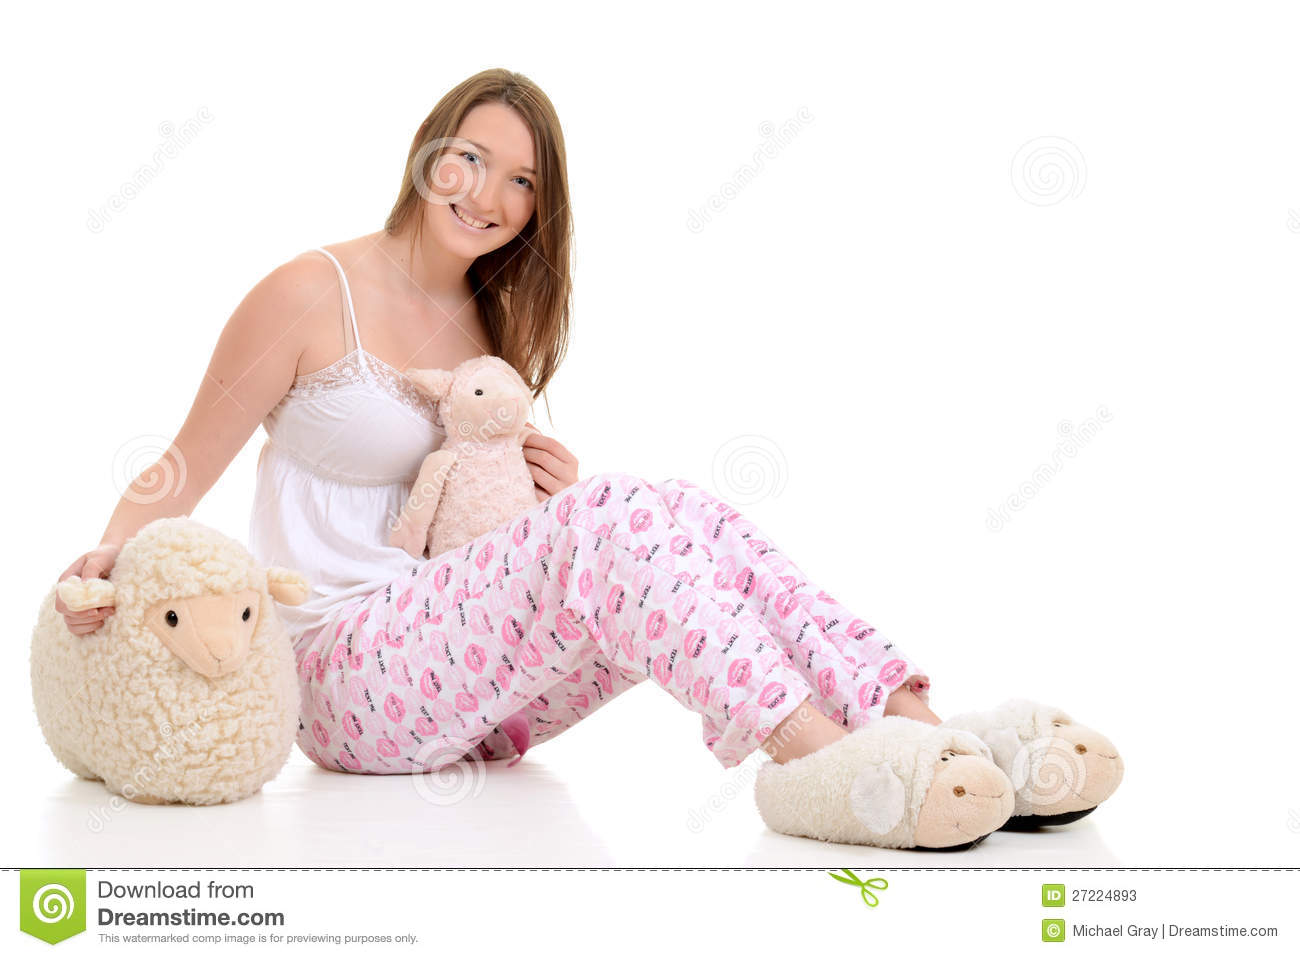 Gril Toy For Teenager : Teenager in pajamas with toy sheep stock image